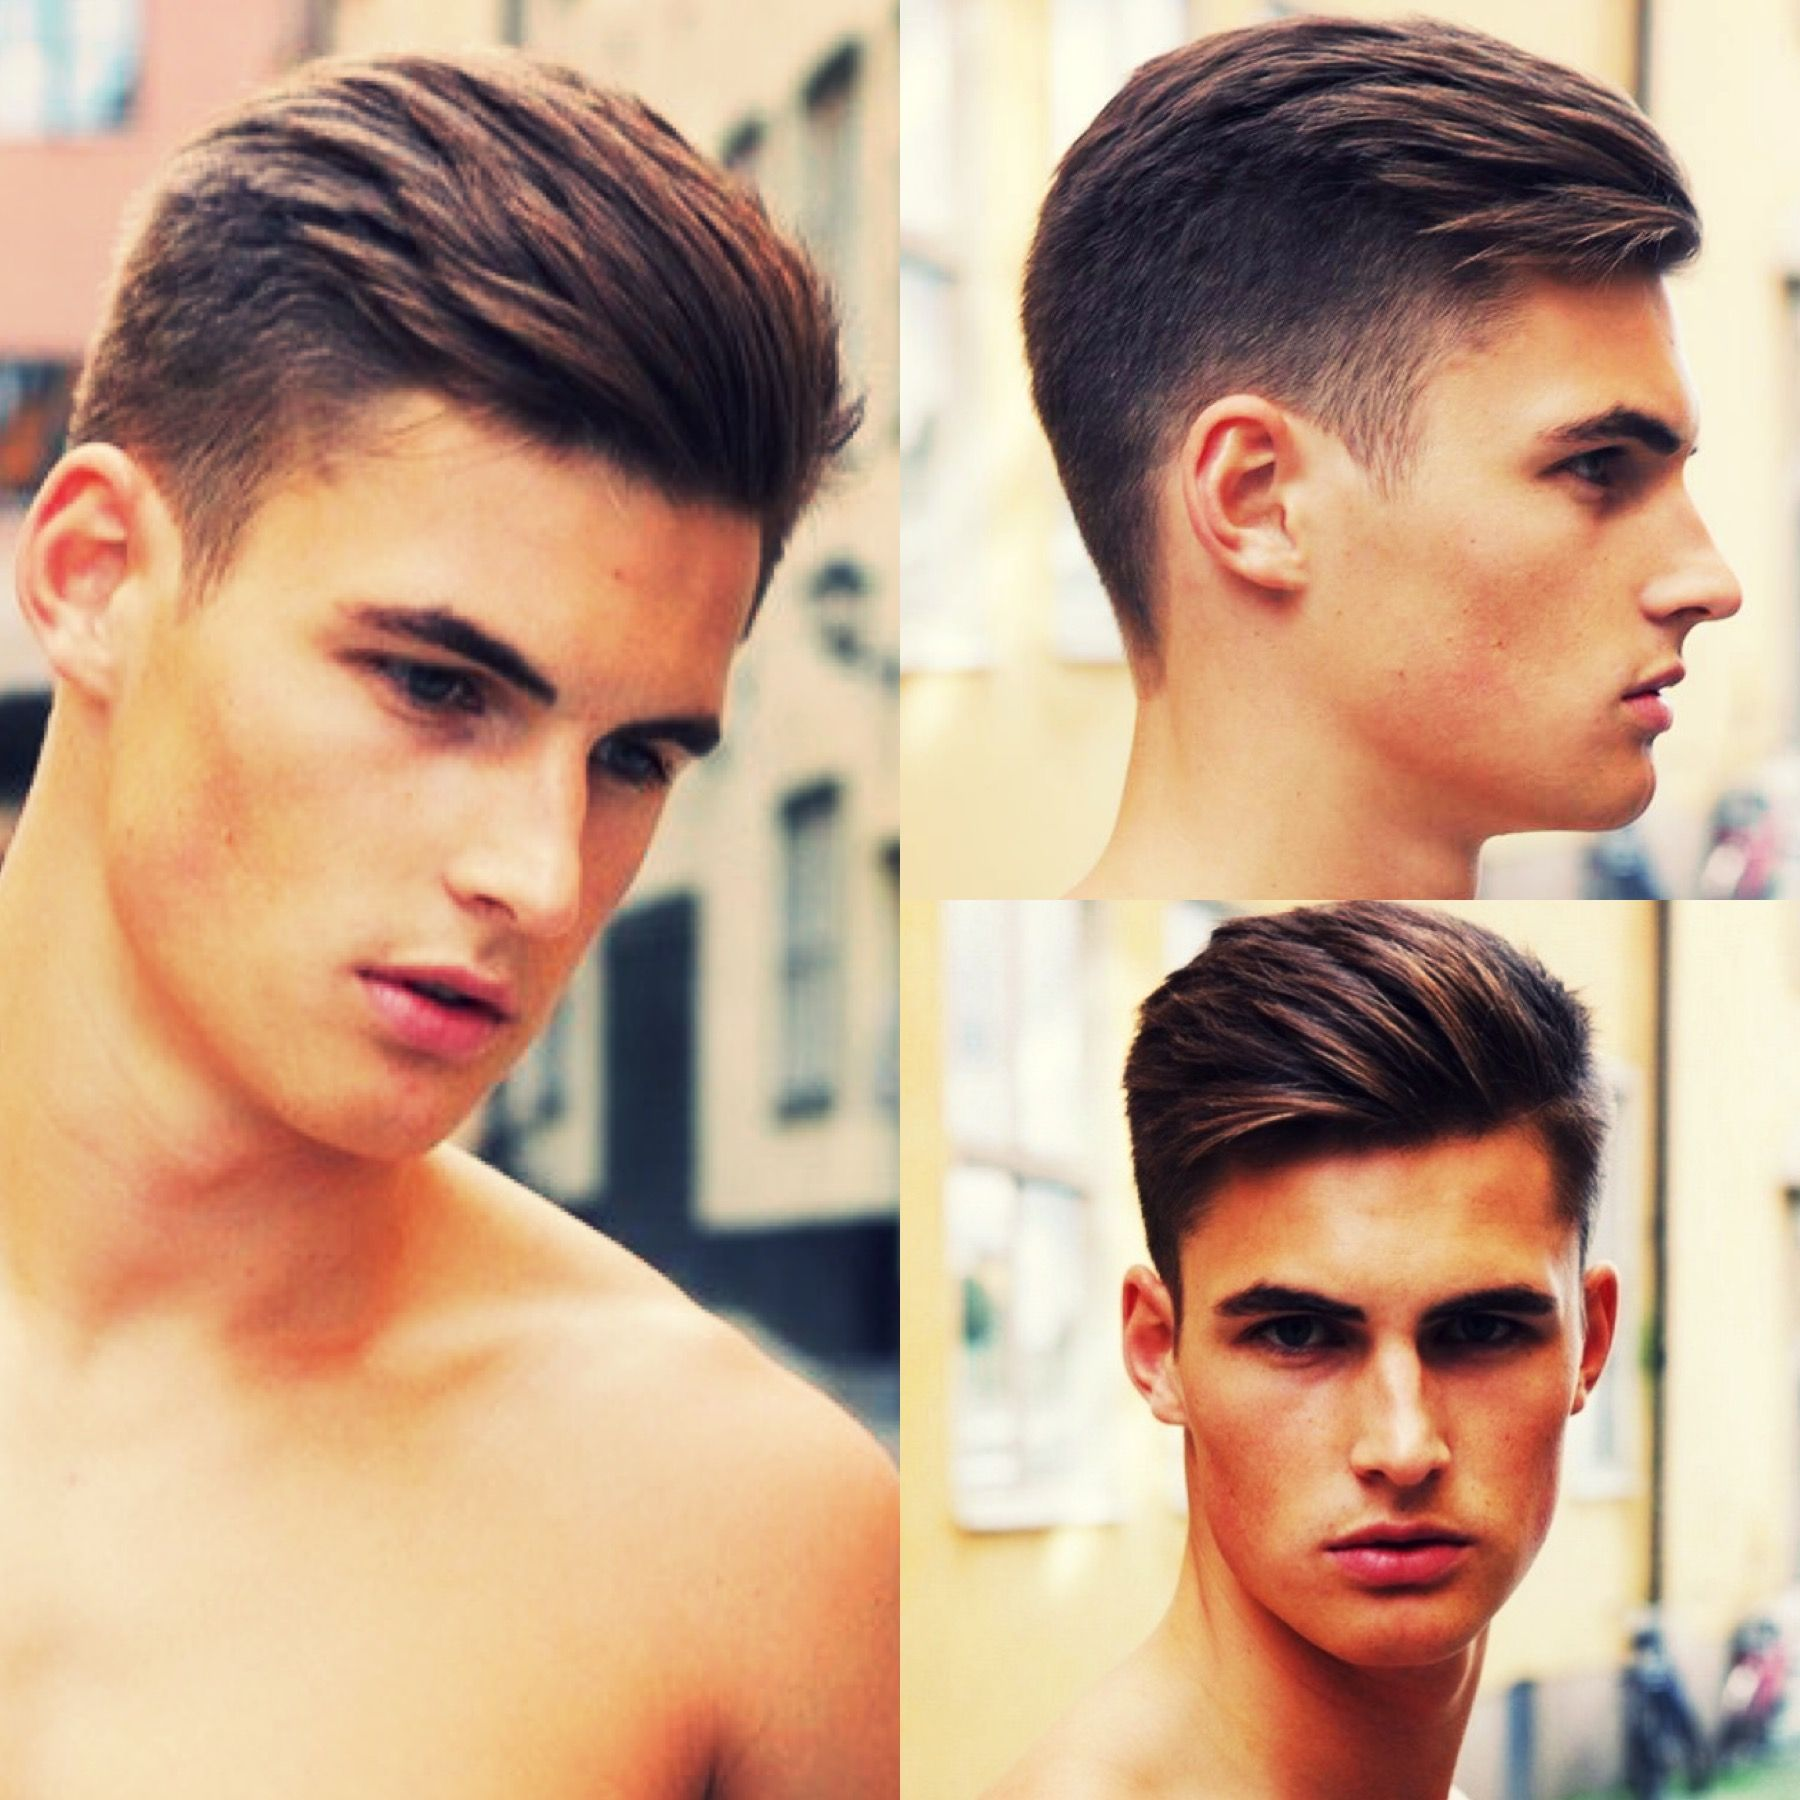 Hairstyle Angles Gents Hair Style Mens Hairstyles Short Medium